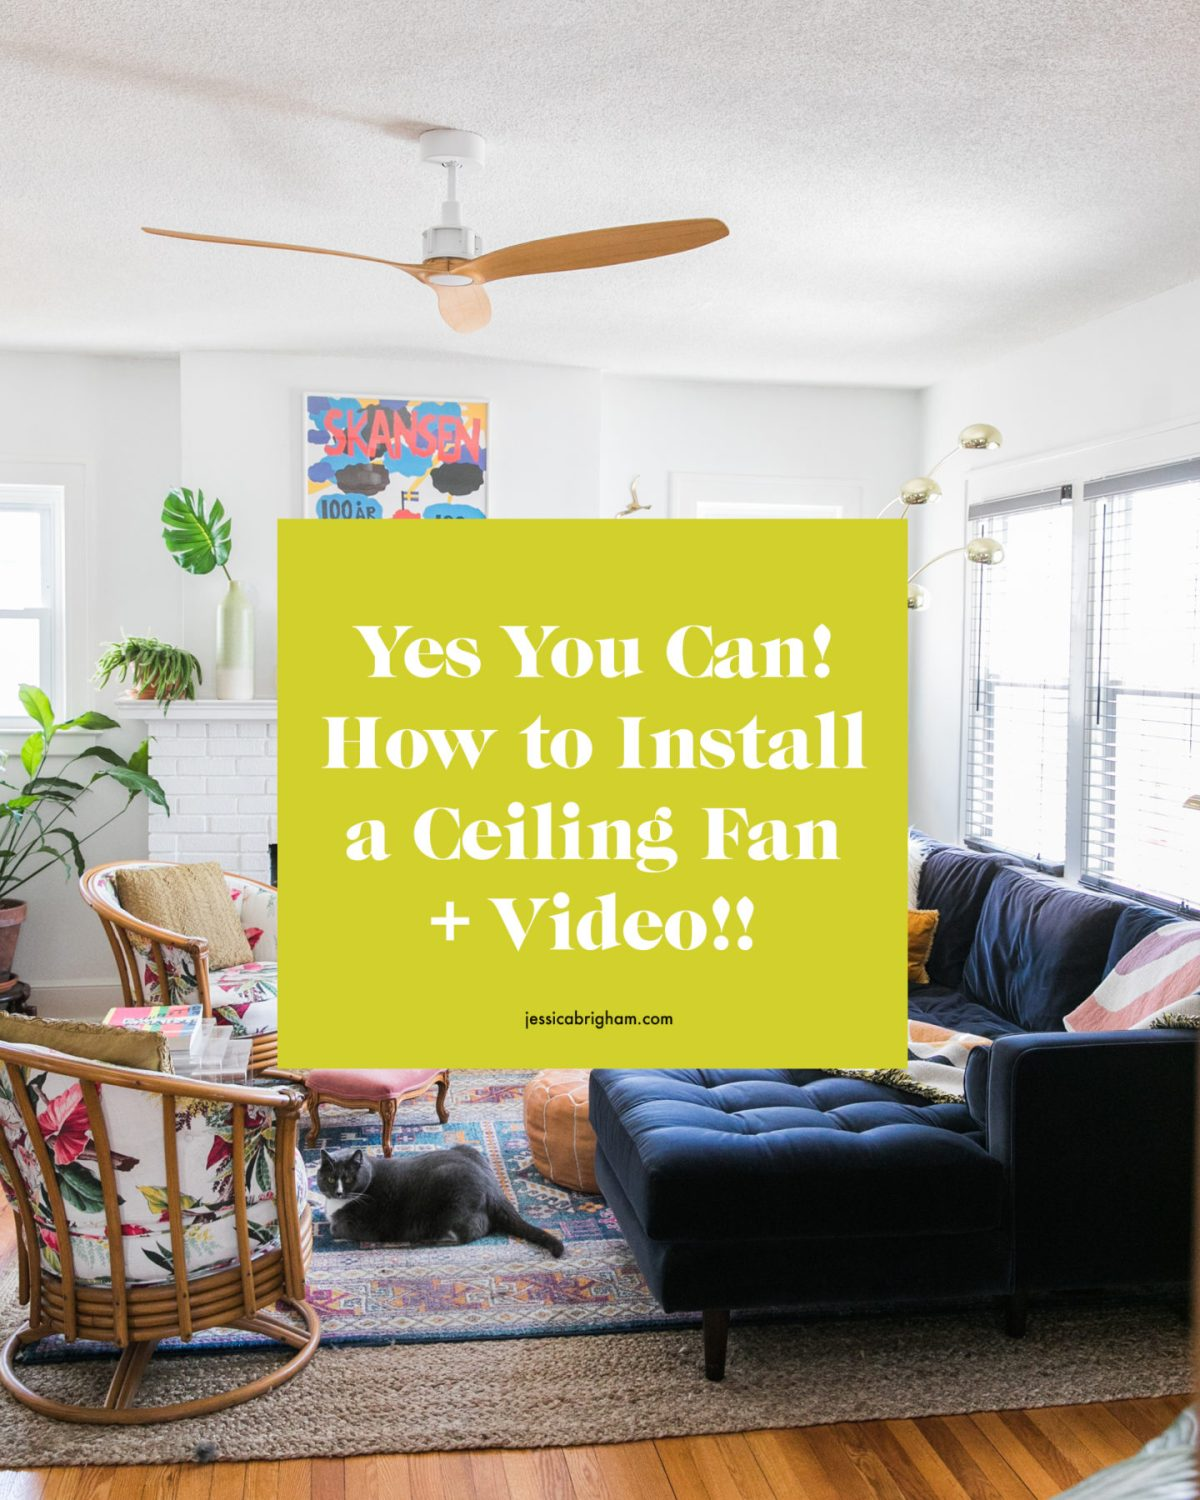 Yes You Can! How to Install a Ceiling Fan | Ceiling Fan Installation | Jessica Brigham | Magazine Ready for Life | jessicabrigham.com